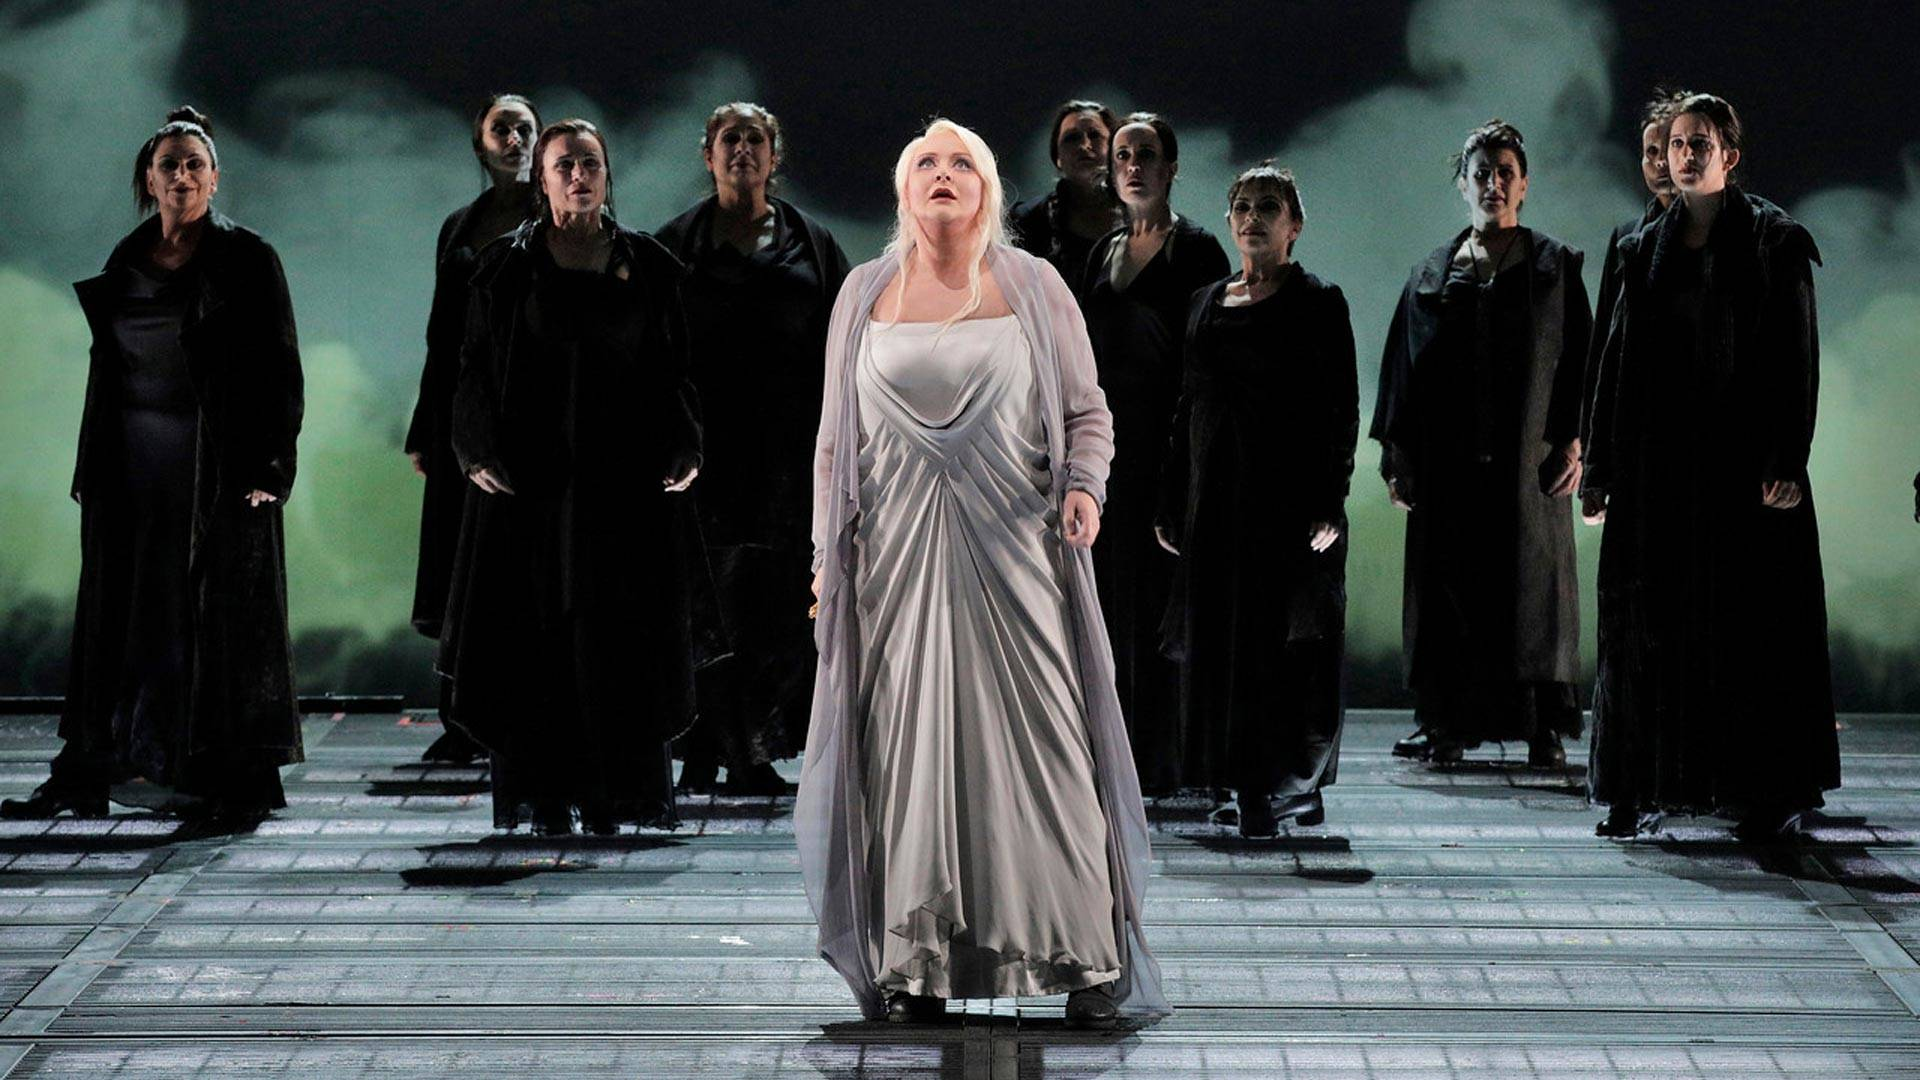 Iréne Theorin as Brünnhilde and members of the San Francisco Opera Chorus in Wagner's 'Götterdämmerung.' Cory Weaver/San Francisco Opera